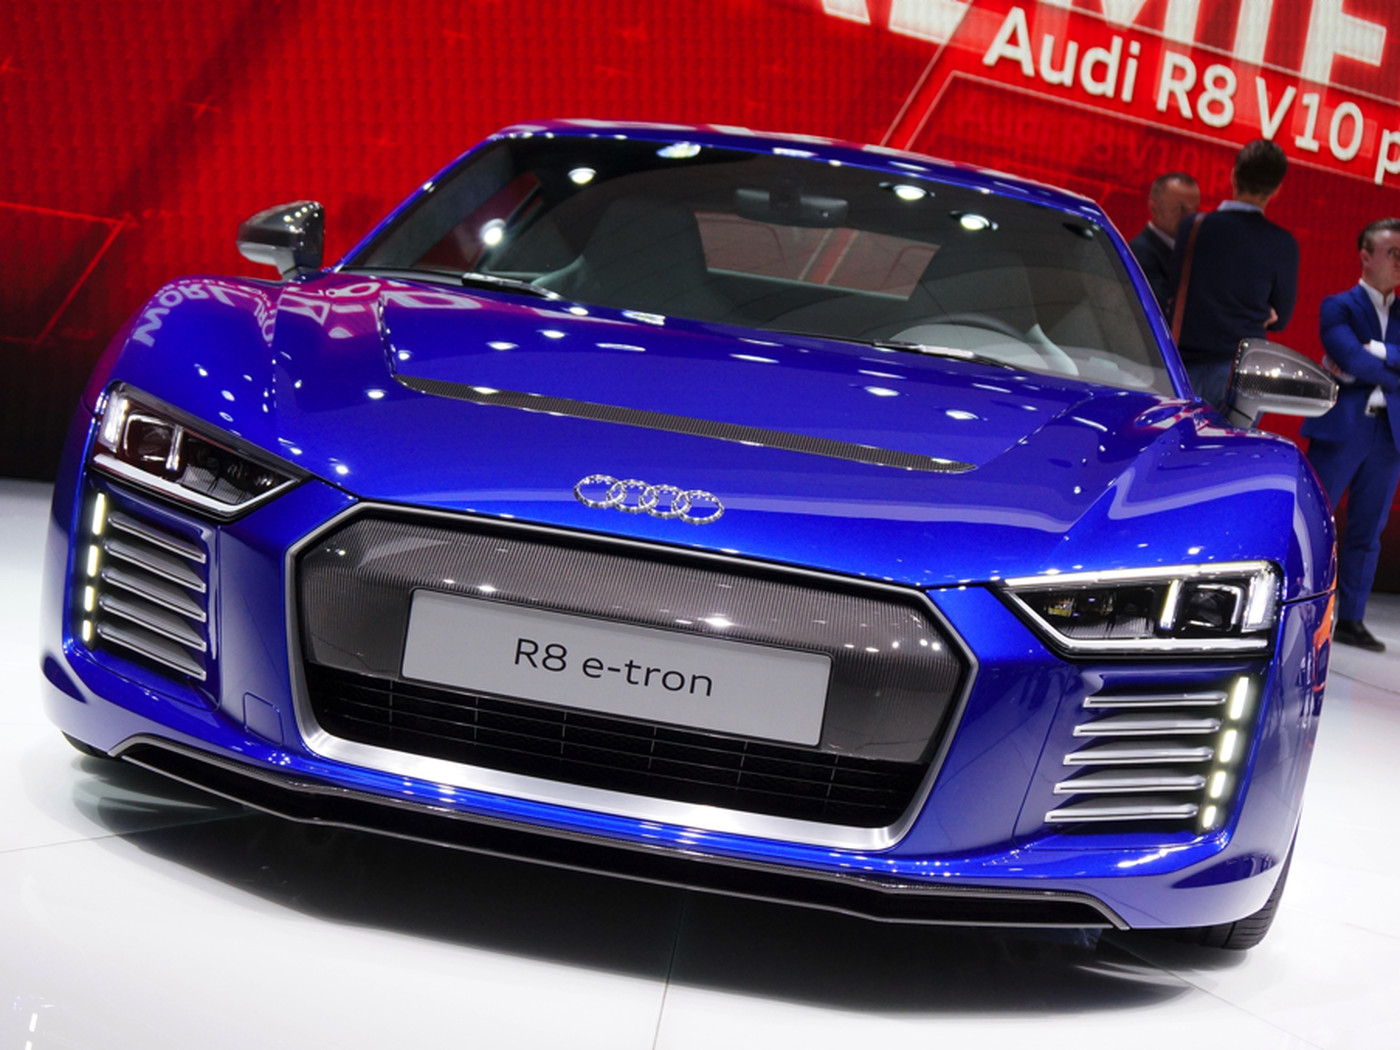 Audi S 1 1 Million All Electric Supercar Is No More The Verge